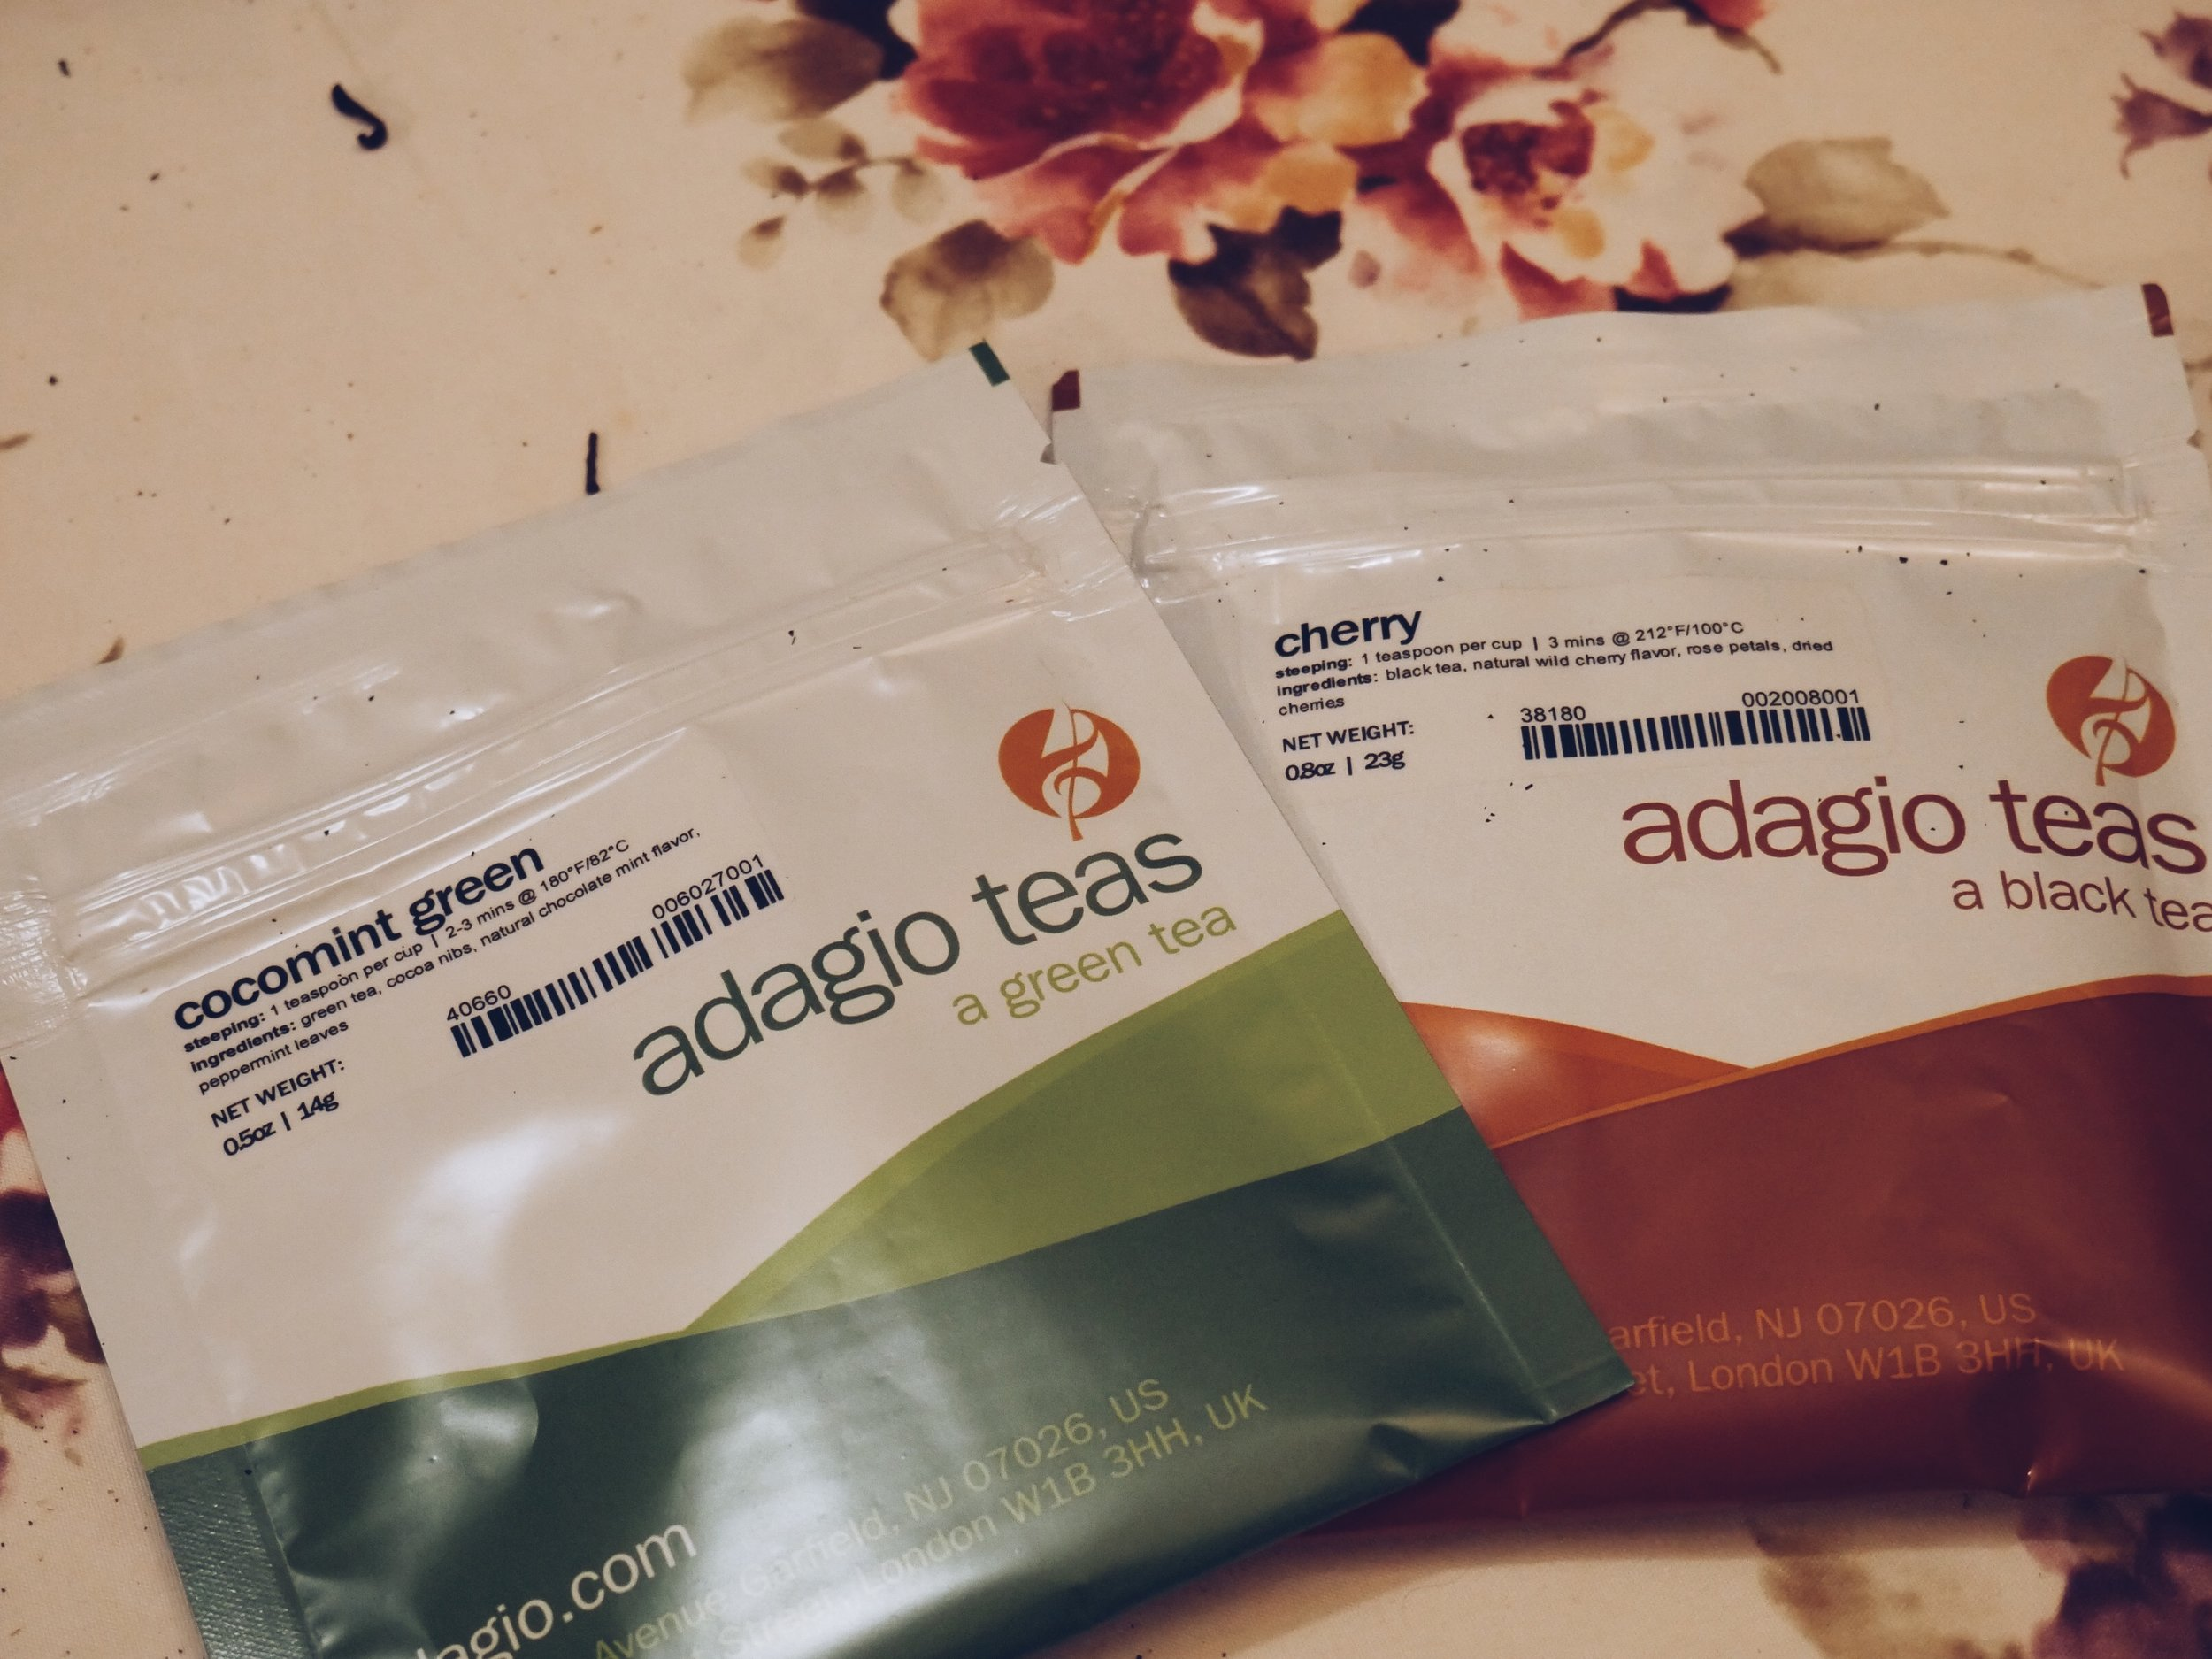 Adagio tea blends samples